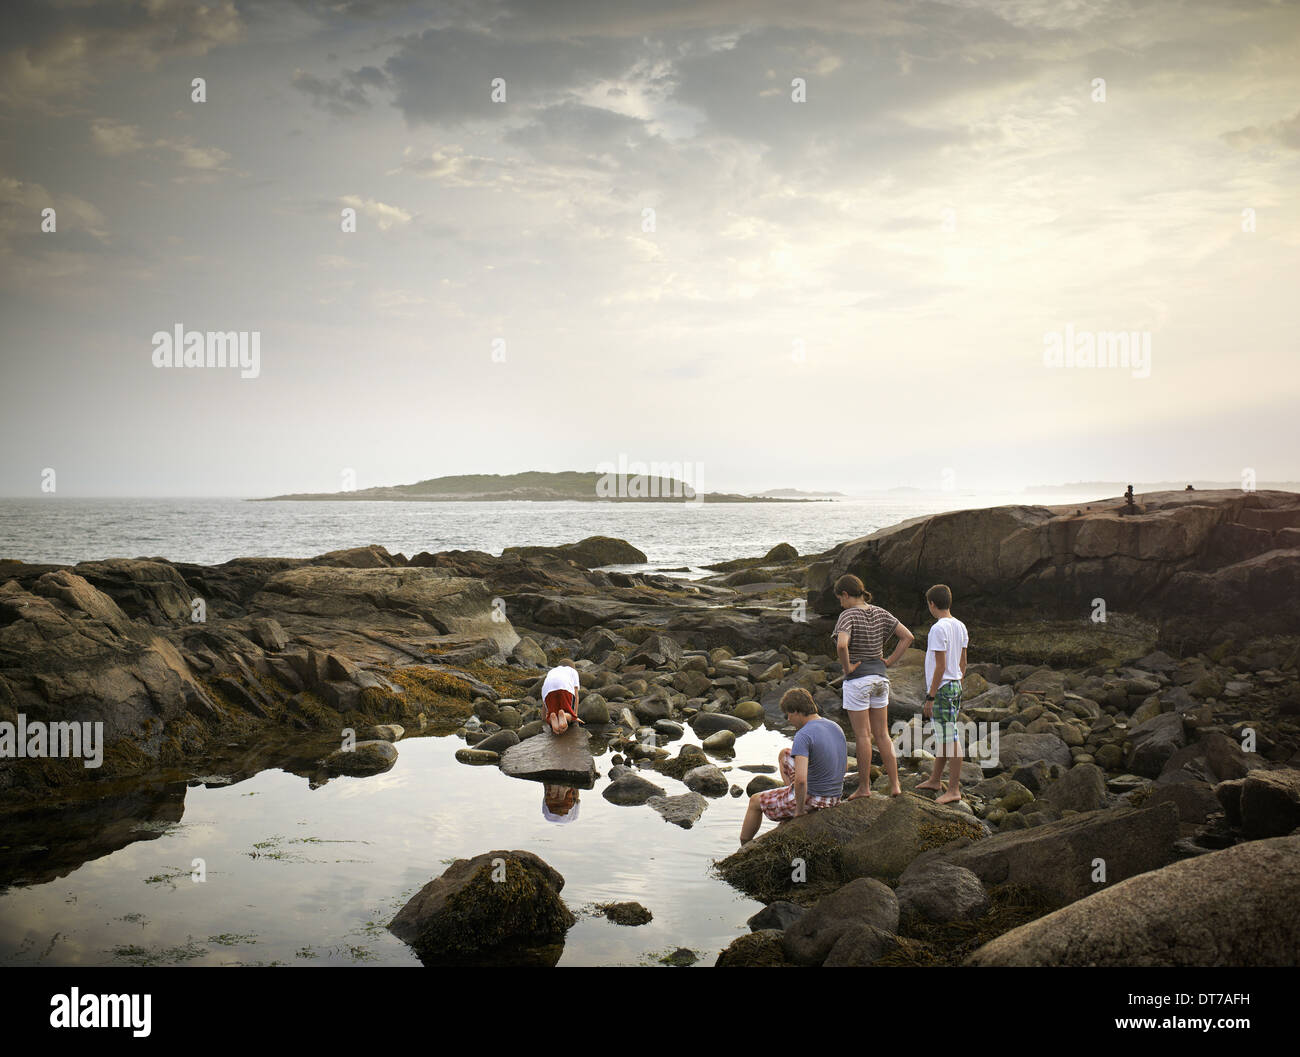 A group of people on the shore rock pooling and exploring the marine life View to an island offshore USA Stock Photo